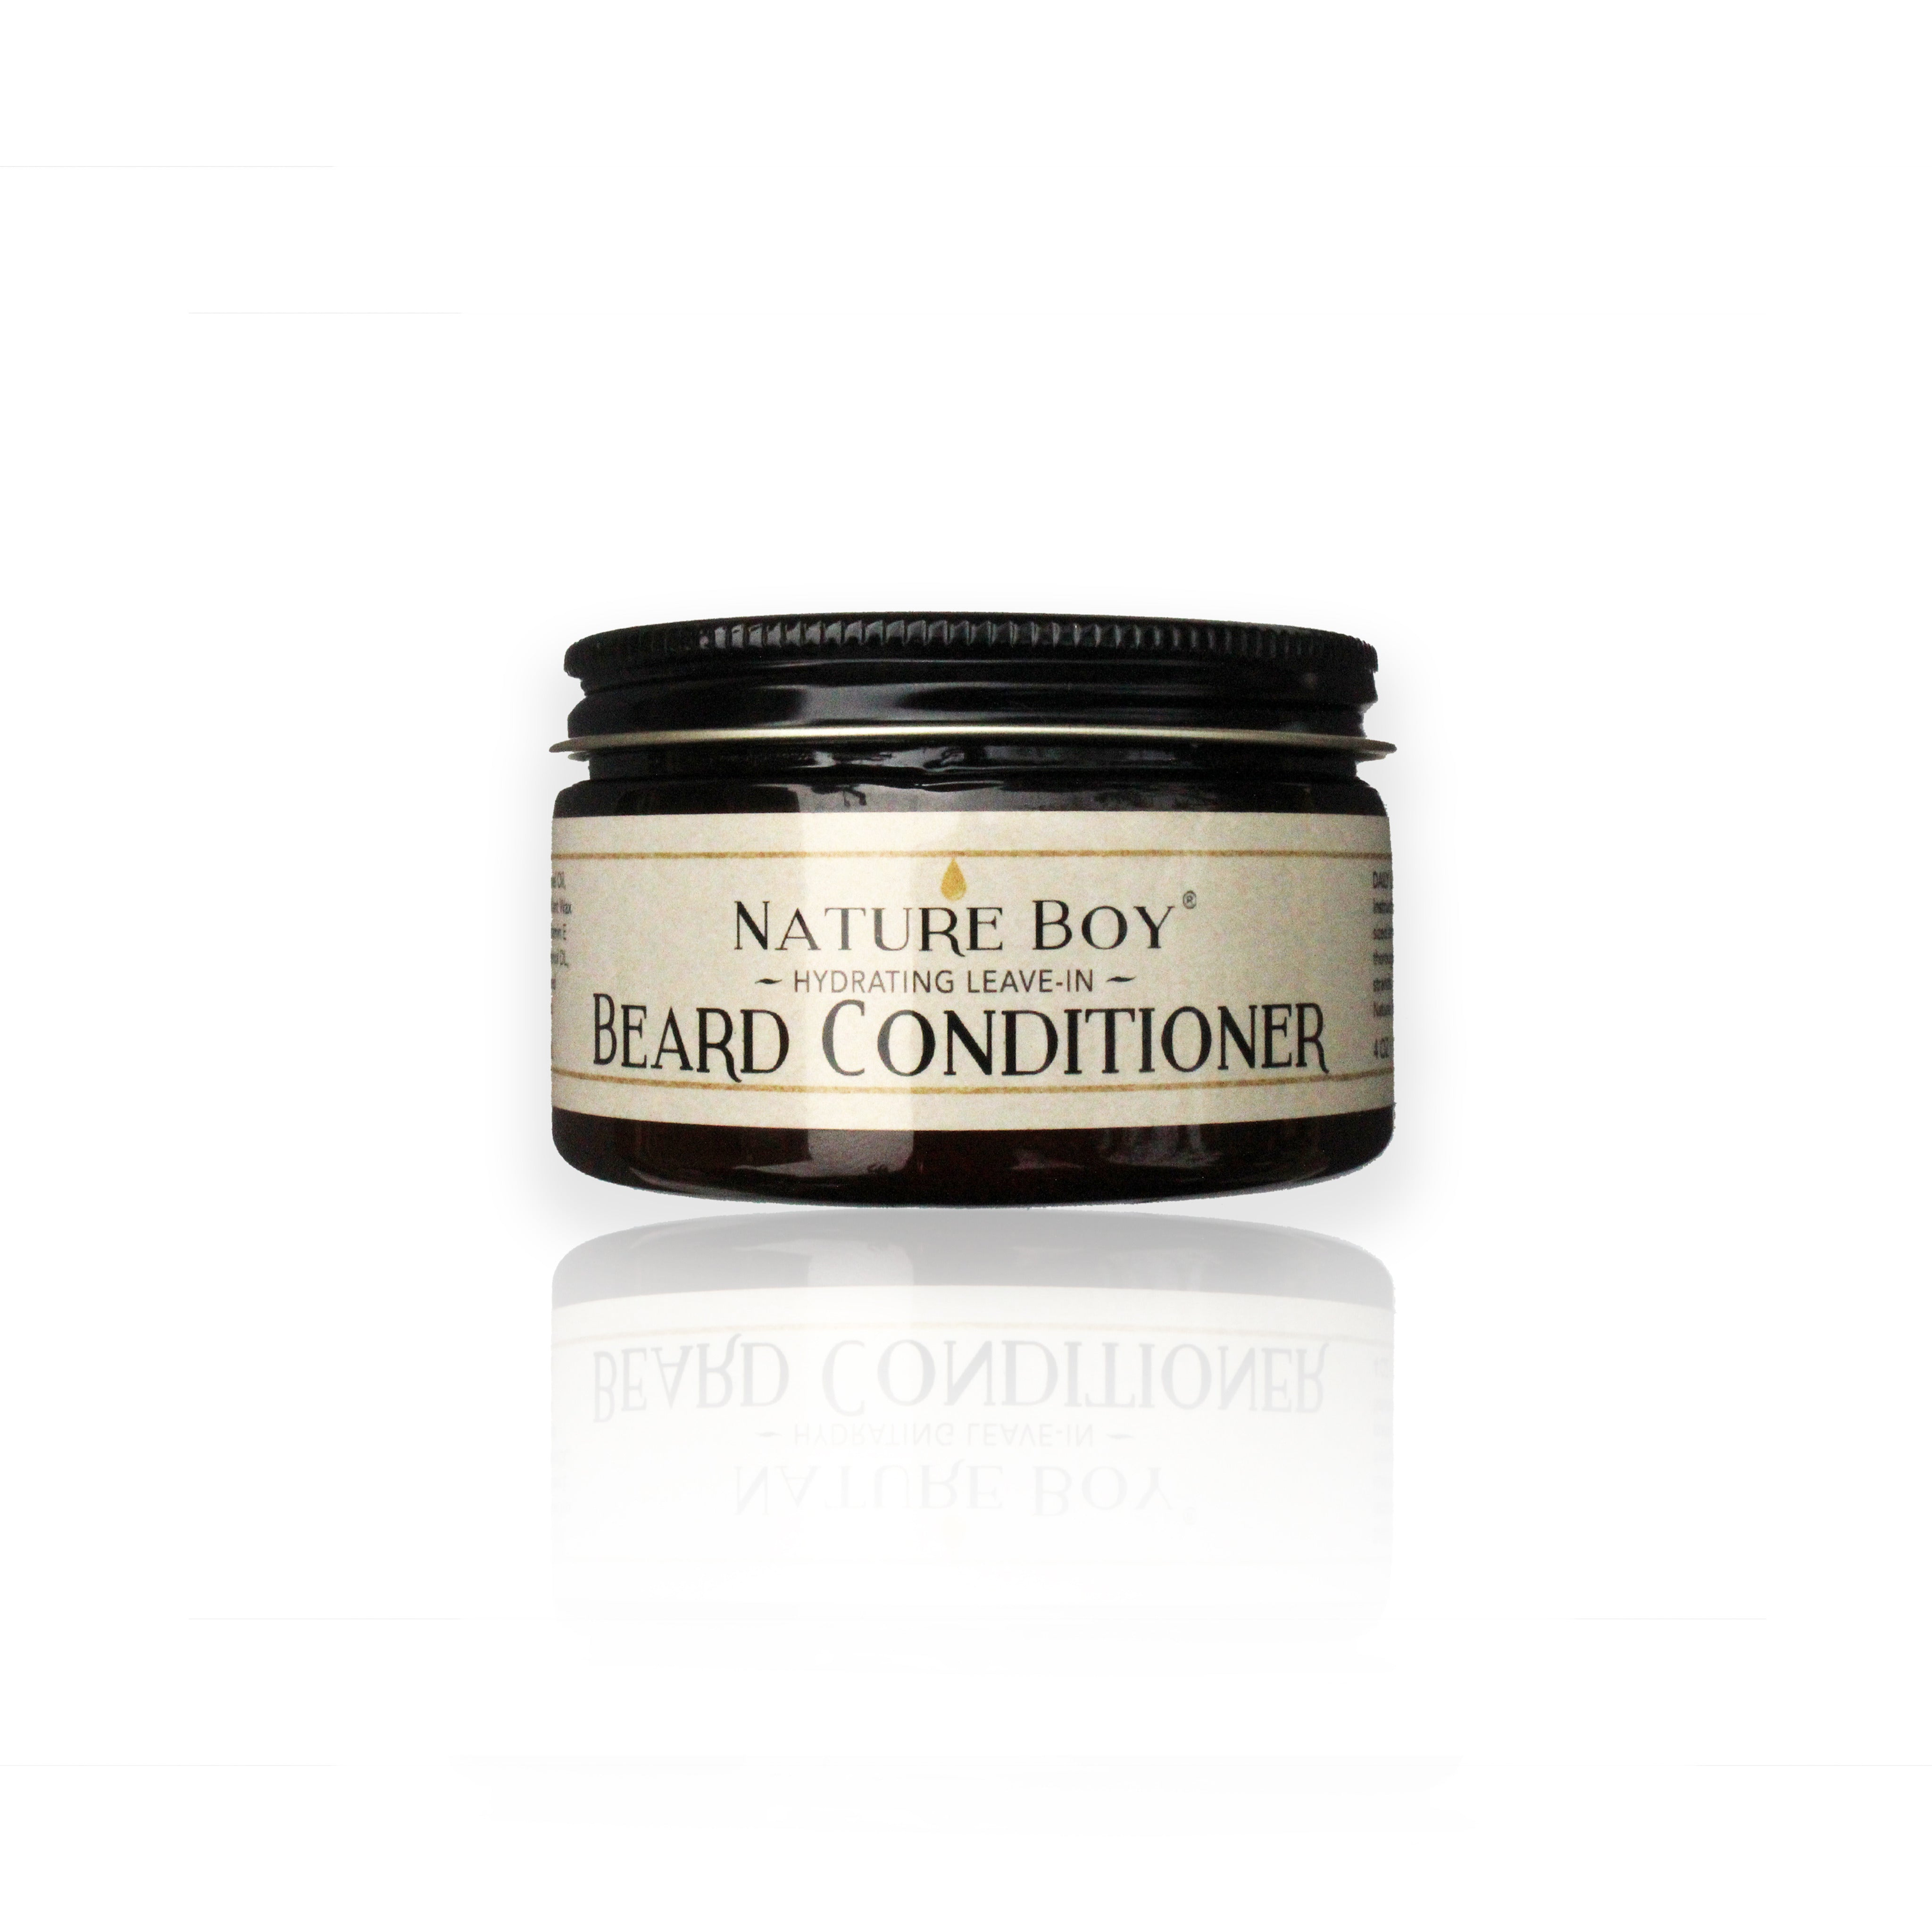 NATURE BOY Leave-In Beard Conditioner